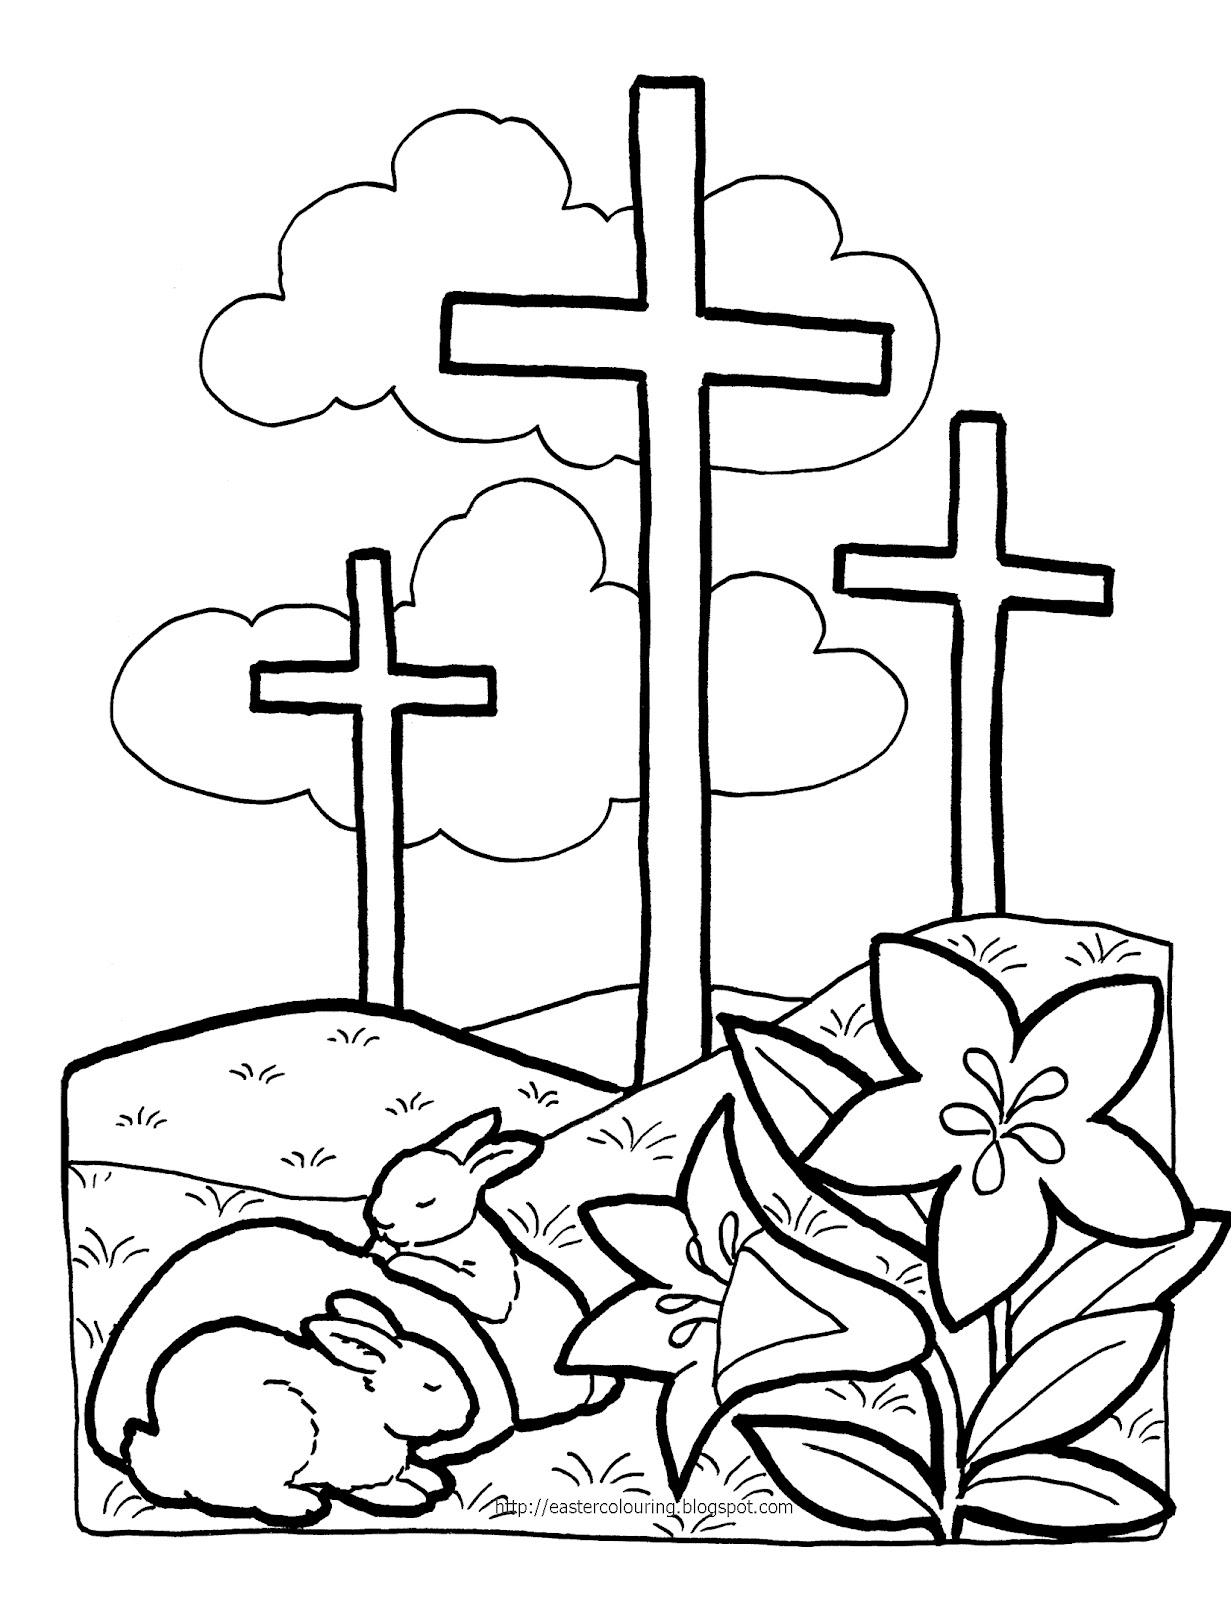 free coloring pages easter christian - photo#2